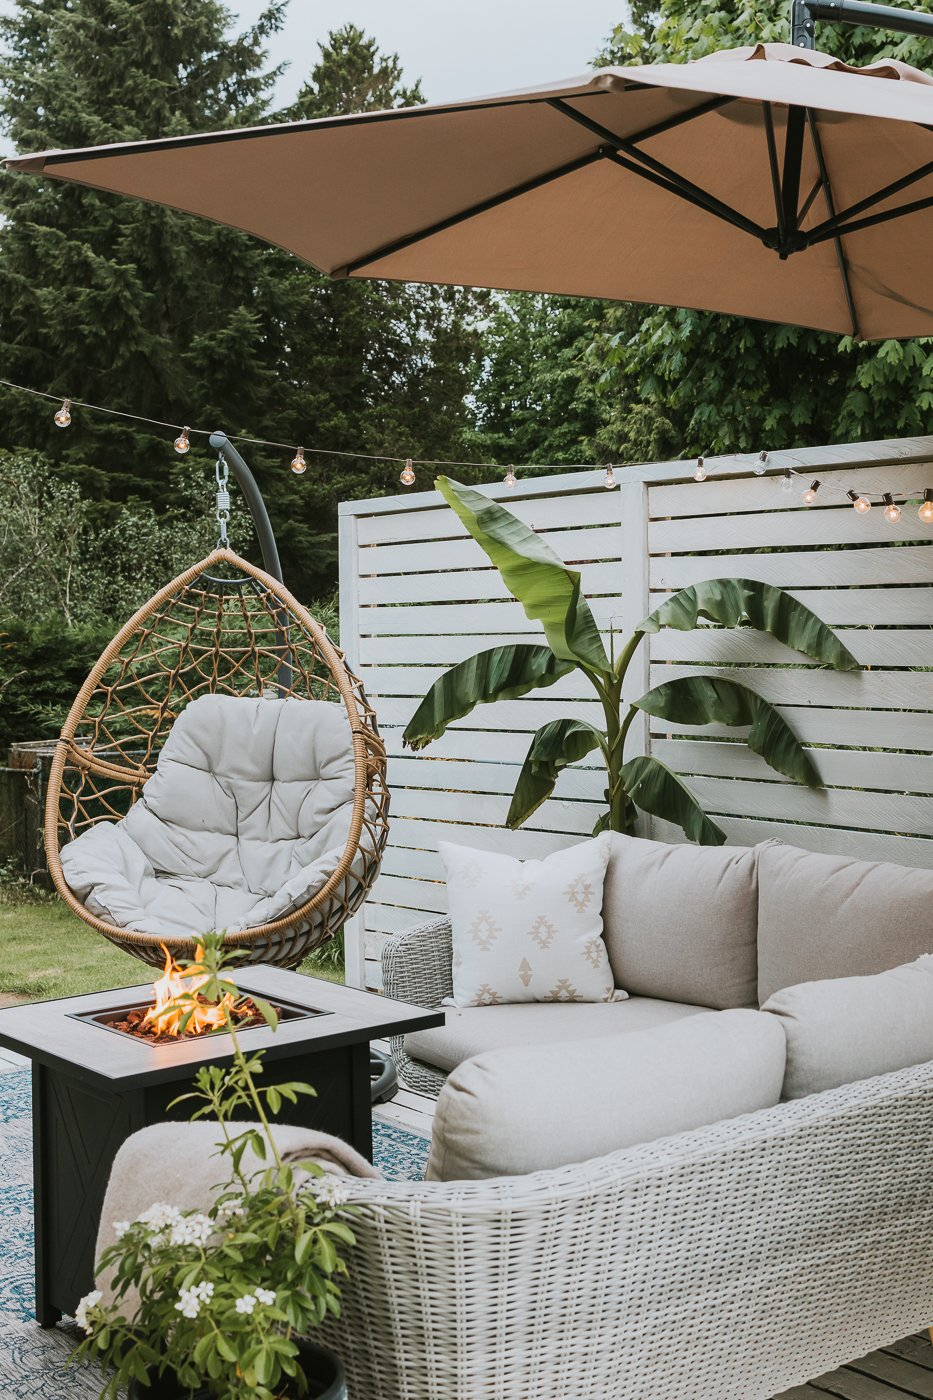 Summer 2020 Home Walk Through. Take A Walk Through Our Home and See How We styled It For Summer. All our DIY's and Products are Linked!